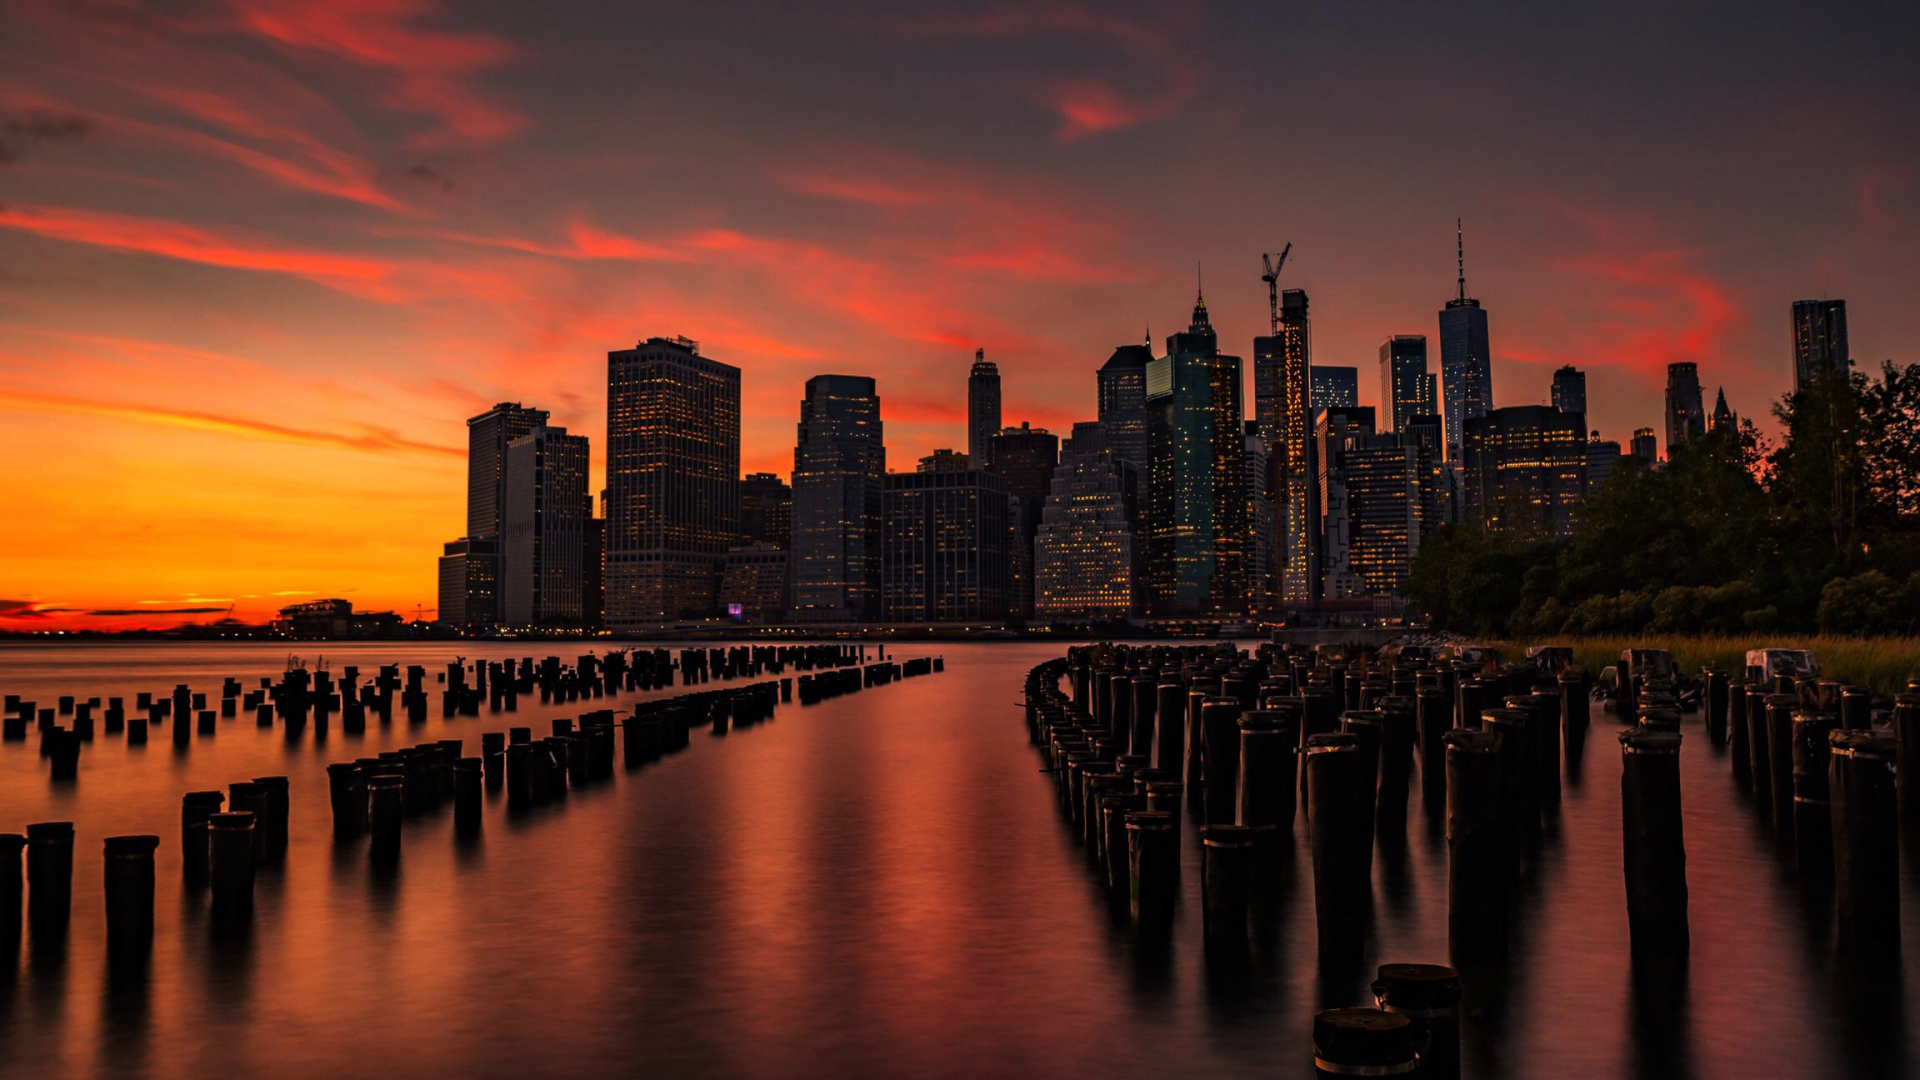 1920x1080 New York Sunset 1080p Laptop Full Hd Wallpaper Hd Nature 4k Wallpapers Images Photos And Background